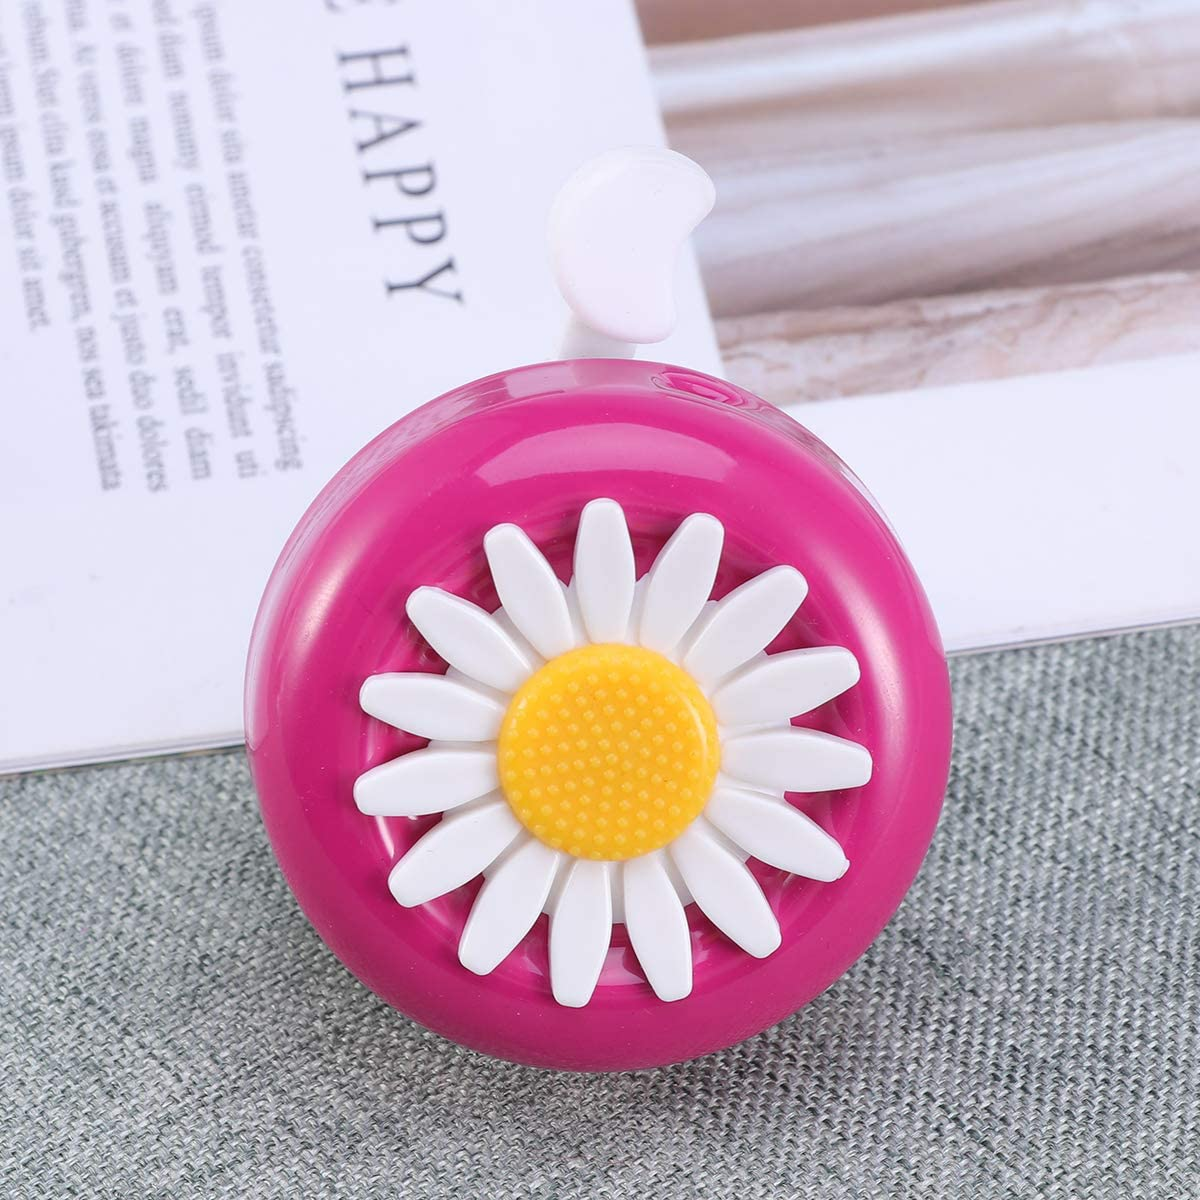 LIOOBO Kids Bike Bell with Plastic Flower Handlebar Bicycle Bell for Girls Boys